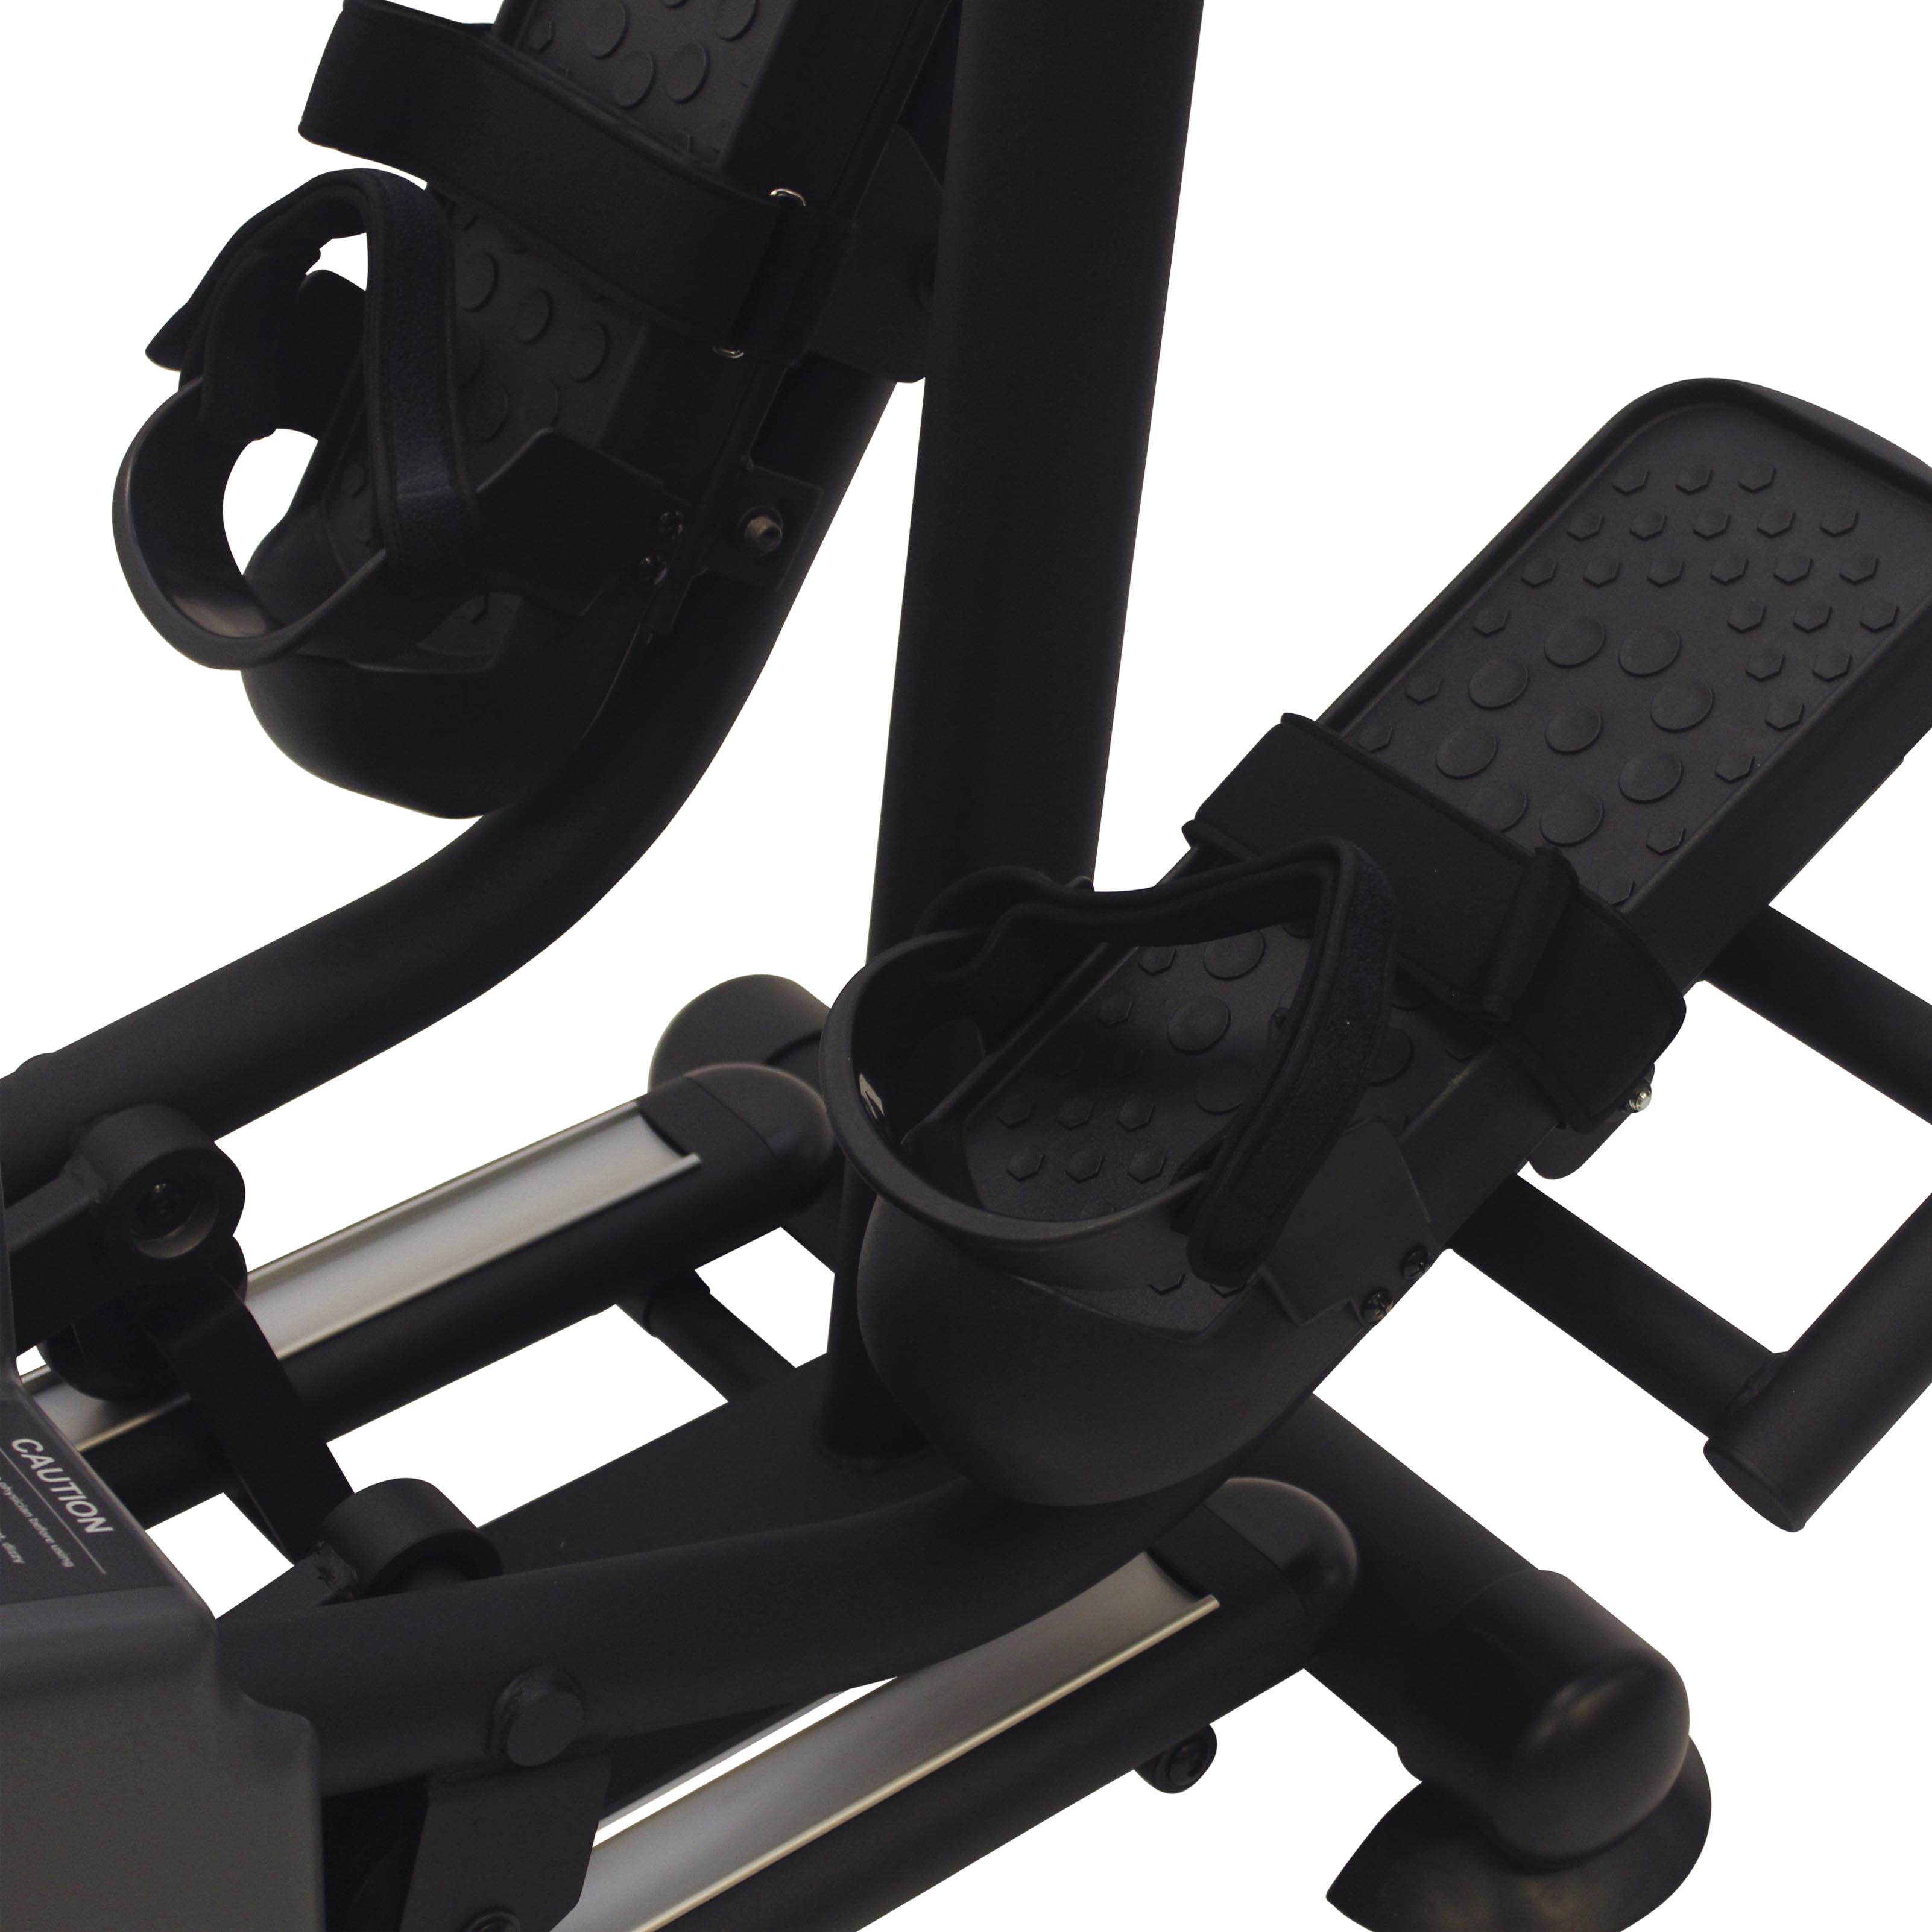 PhysioStep MDX Recumbent Elliptical Pedal